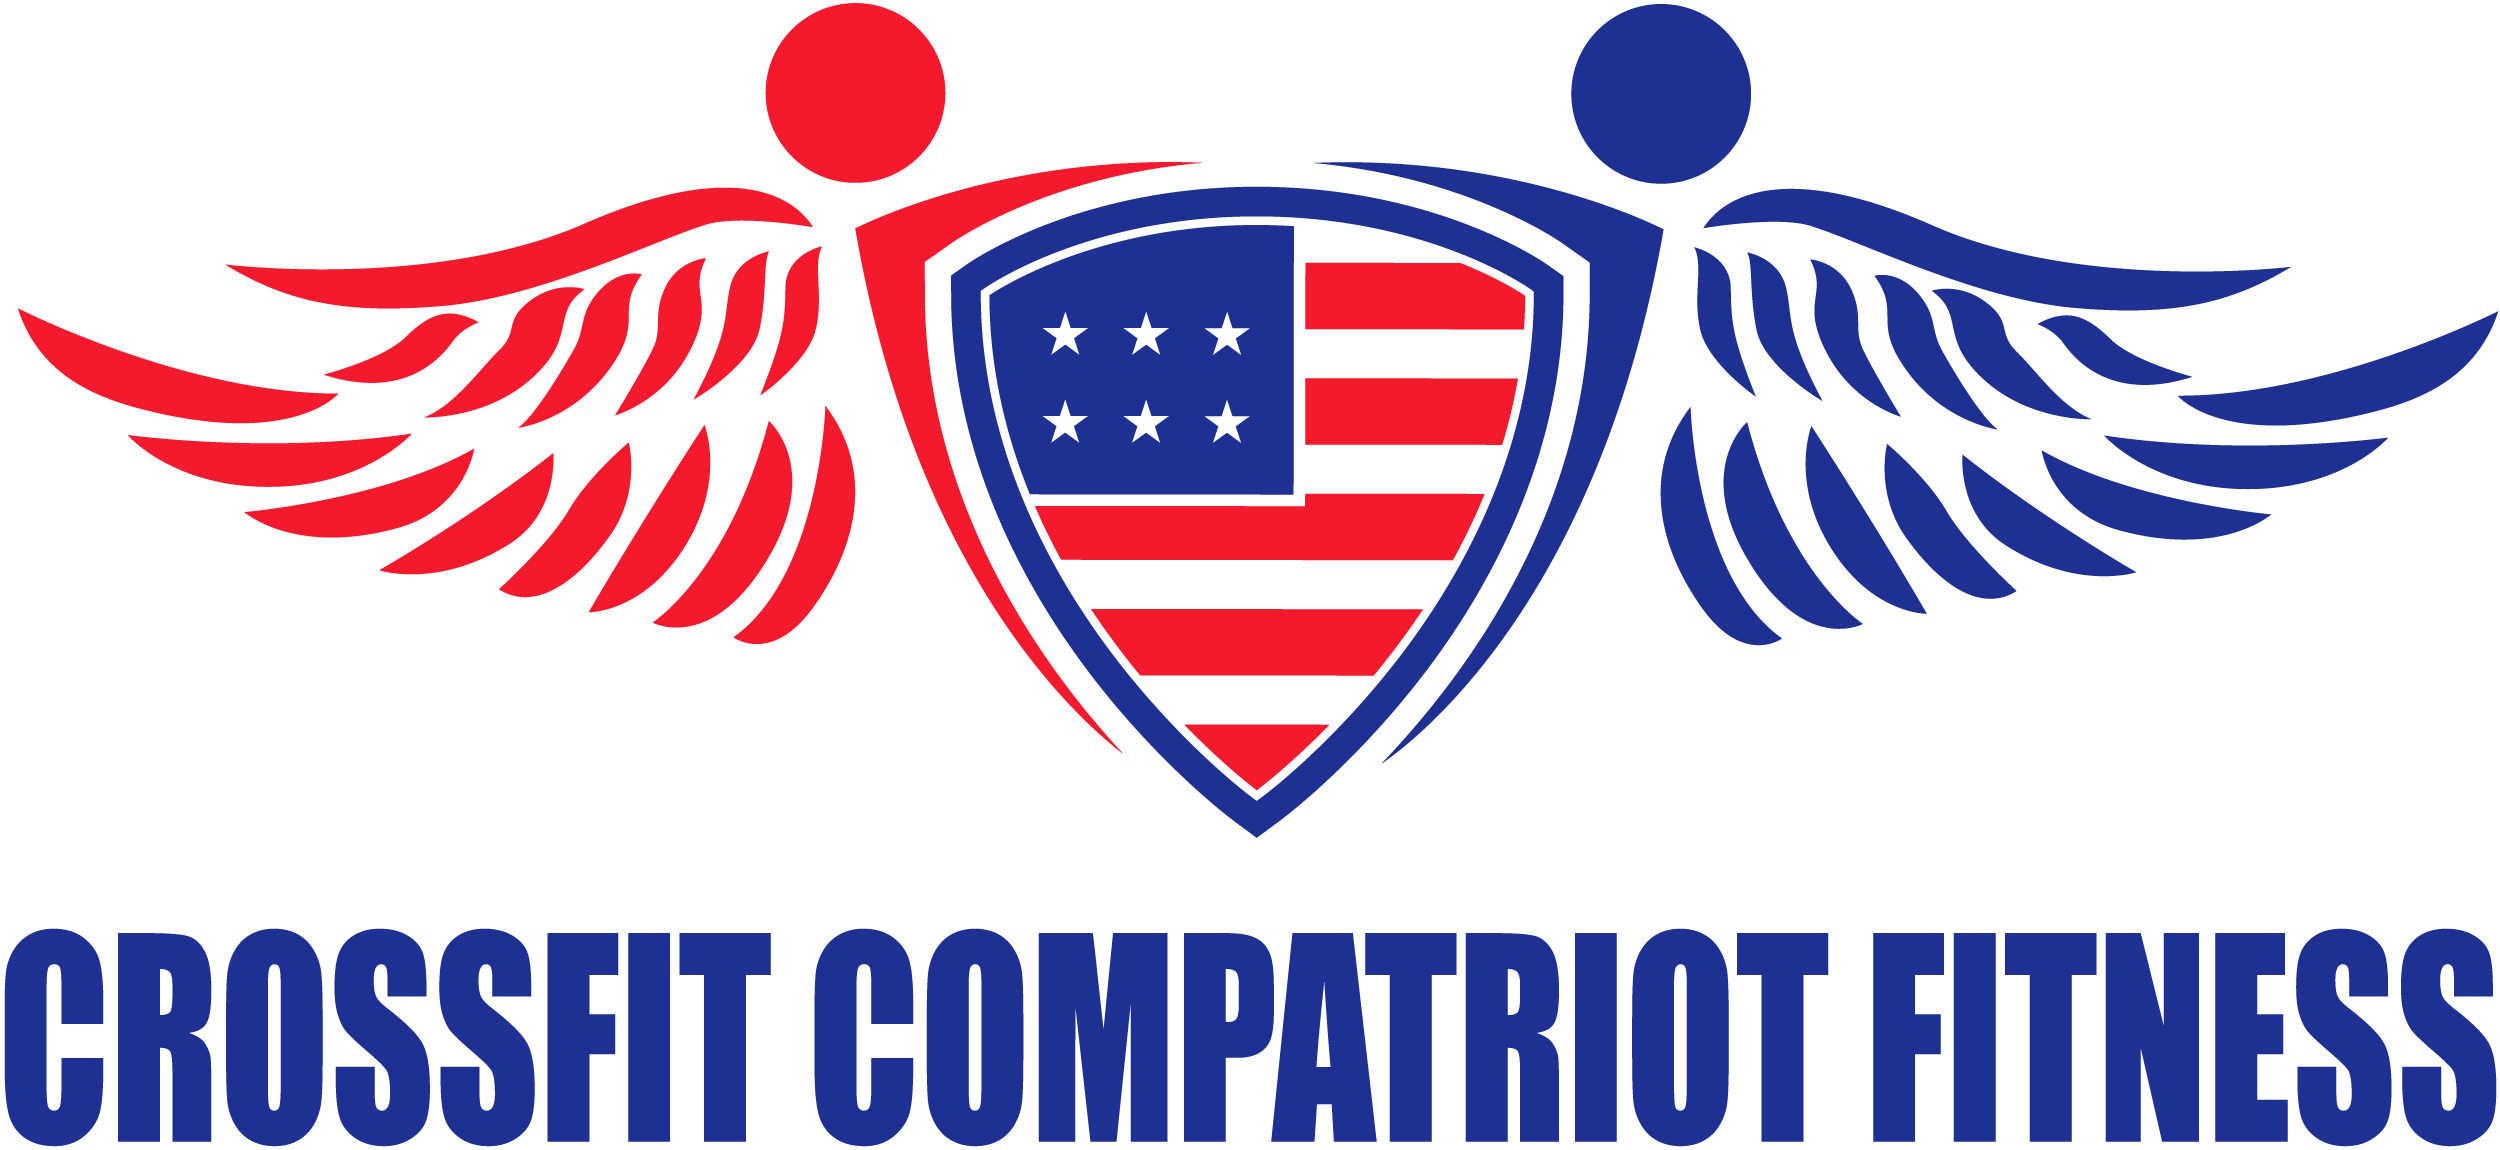 Patriot_Fitness_2 copy.png